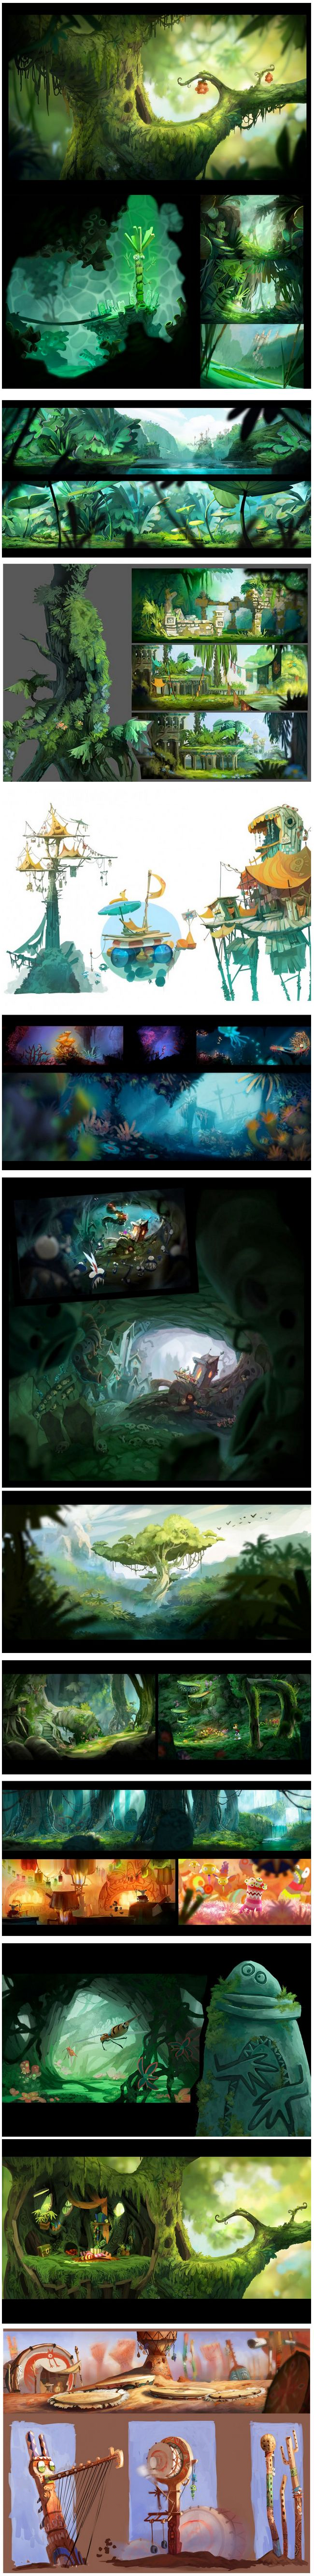 Rayman Origins by Floriane Marchix... Great background designs idea's for animation and motion graphics.